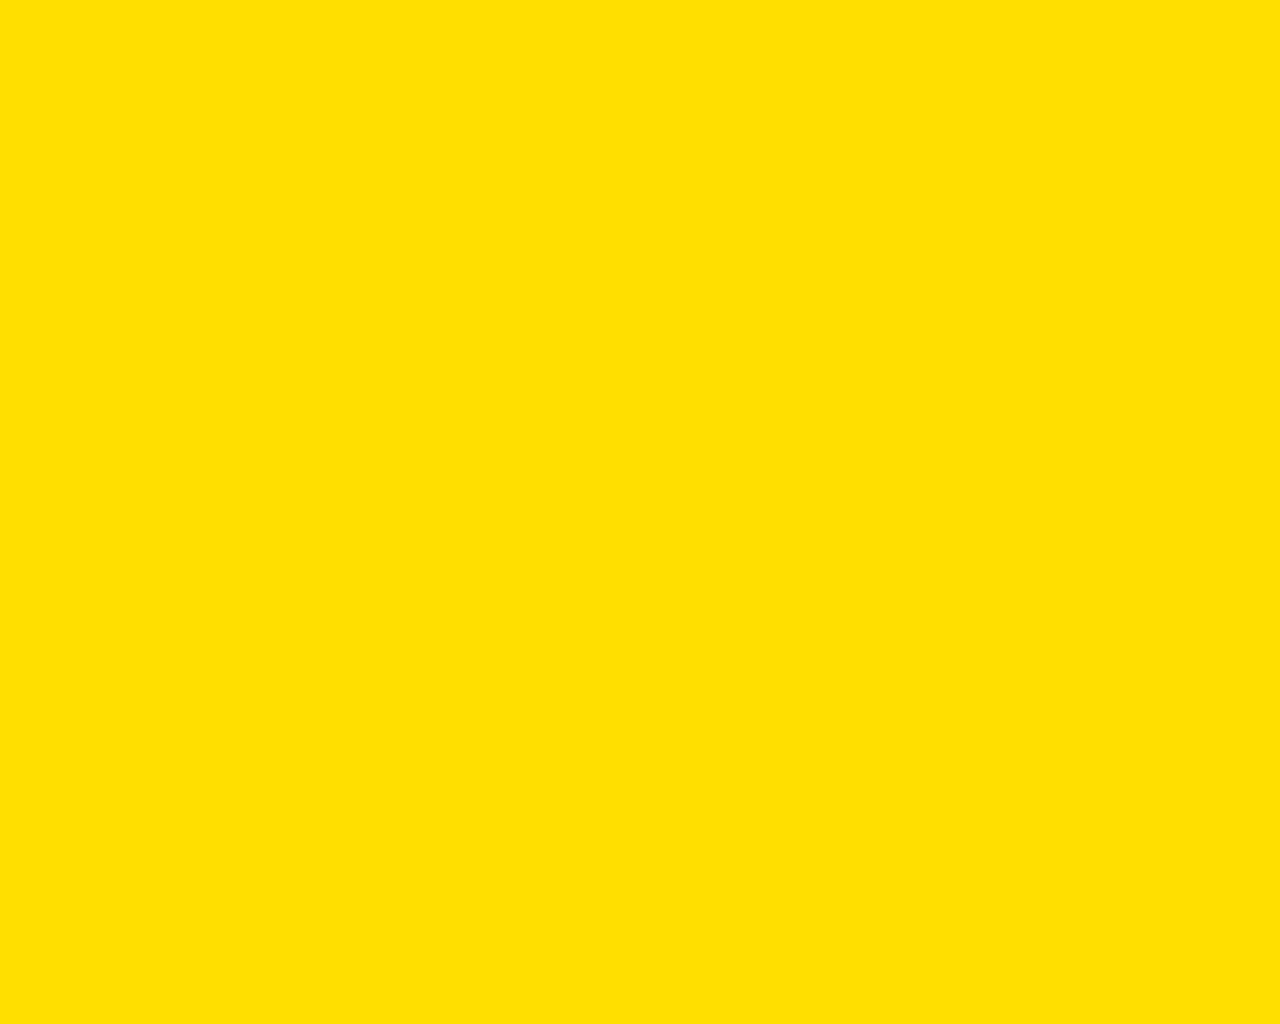 1280x1024 Yellow Pantone Solid Color Background